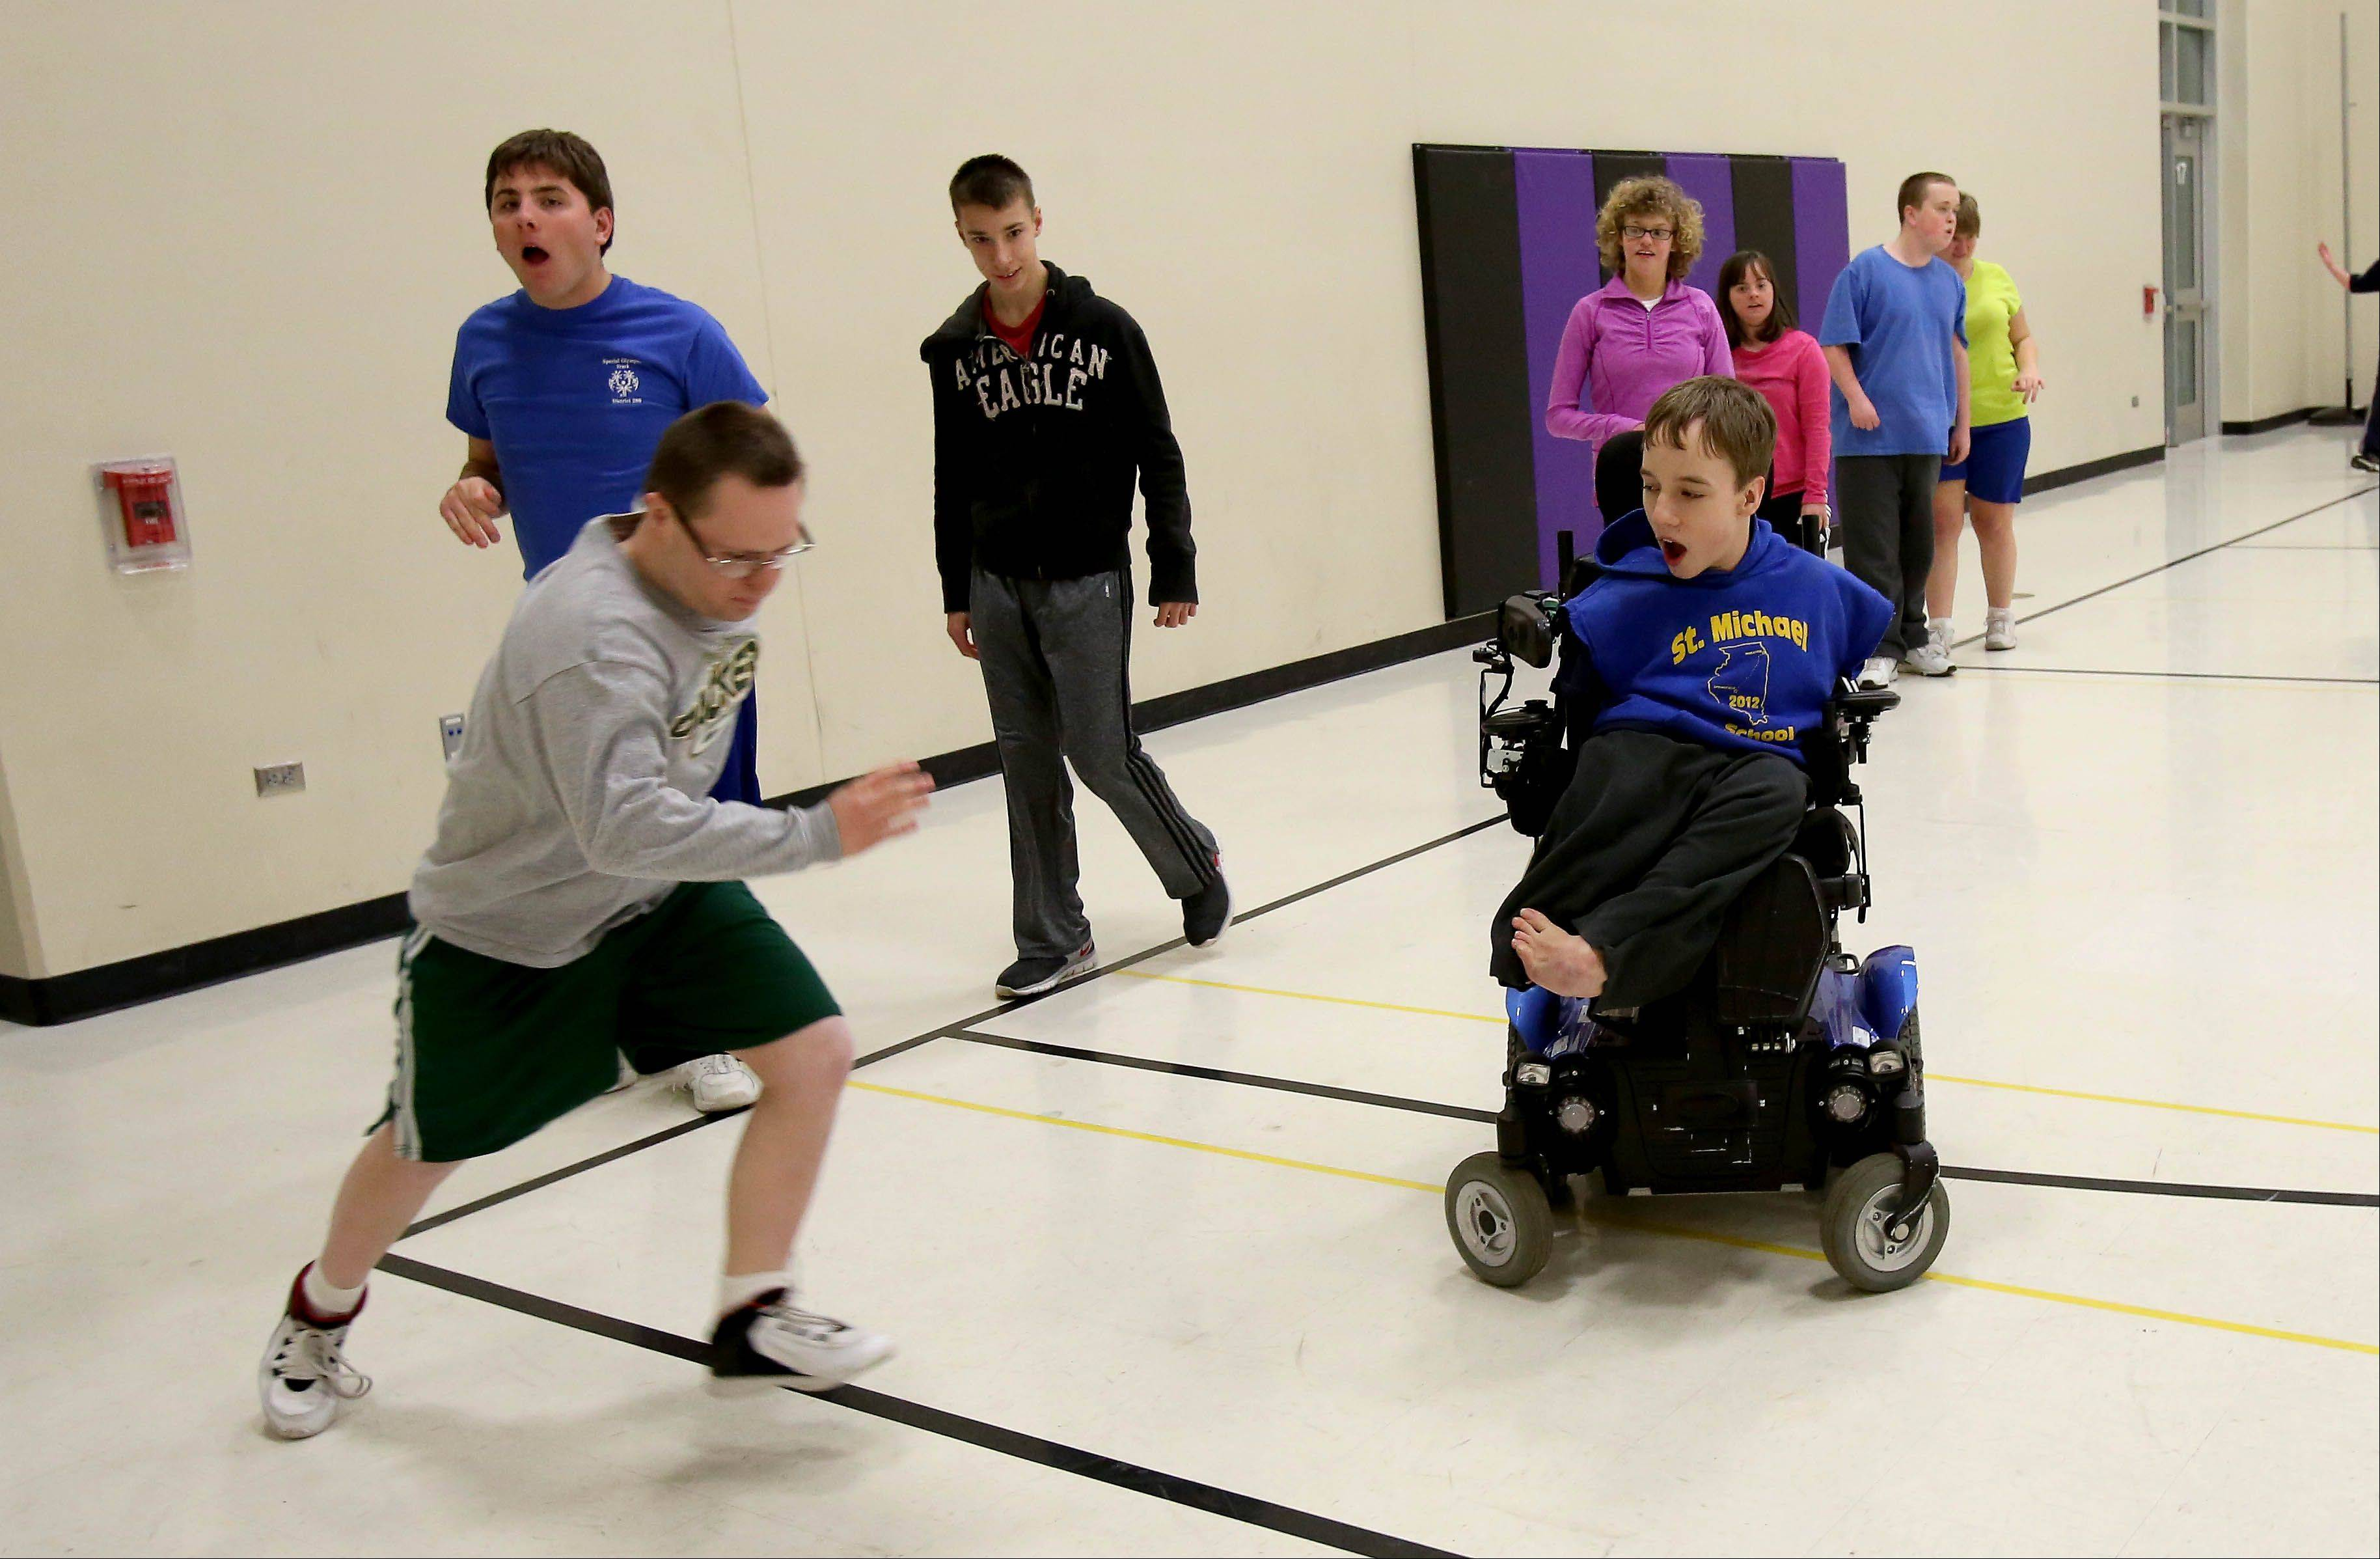 Connor McHugh encourages sprinters as he helps out the Special Olympics basketball and track teams at Hubble Middle School in Warrenville.